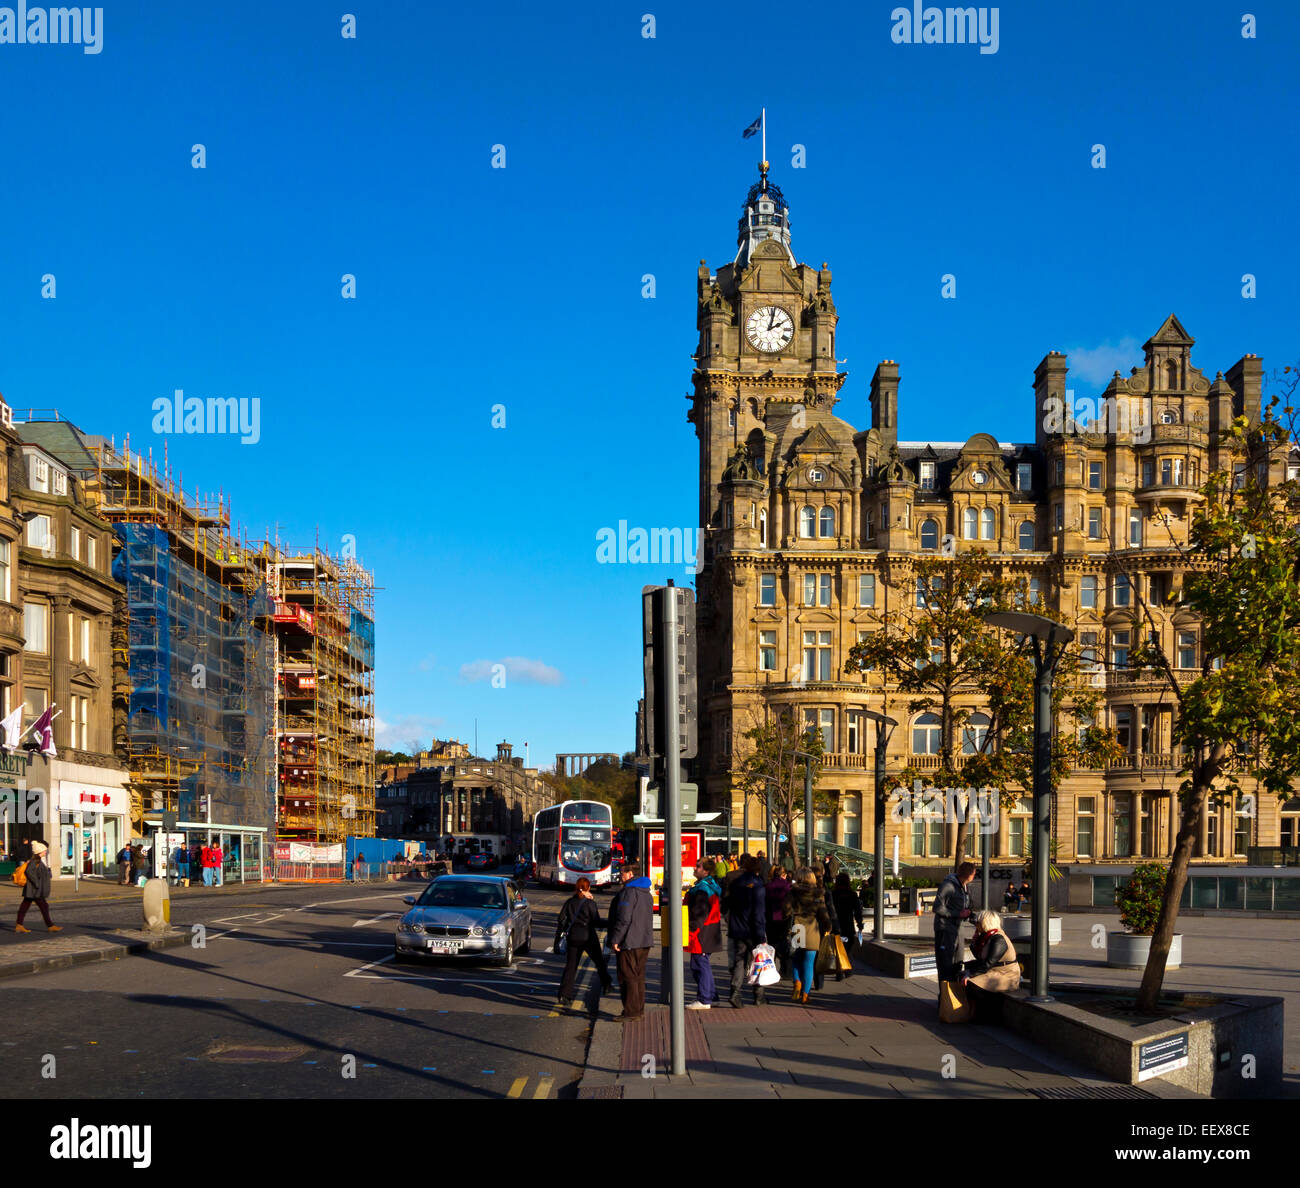 Old Waverley Hotel On Princes Street The Main Shopping Street In Stock Photo Royalty Free Image